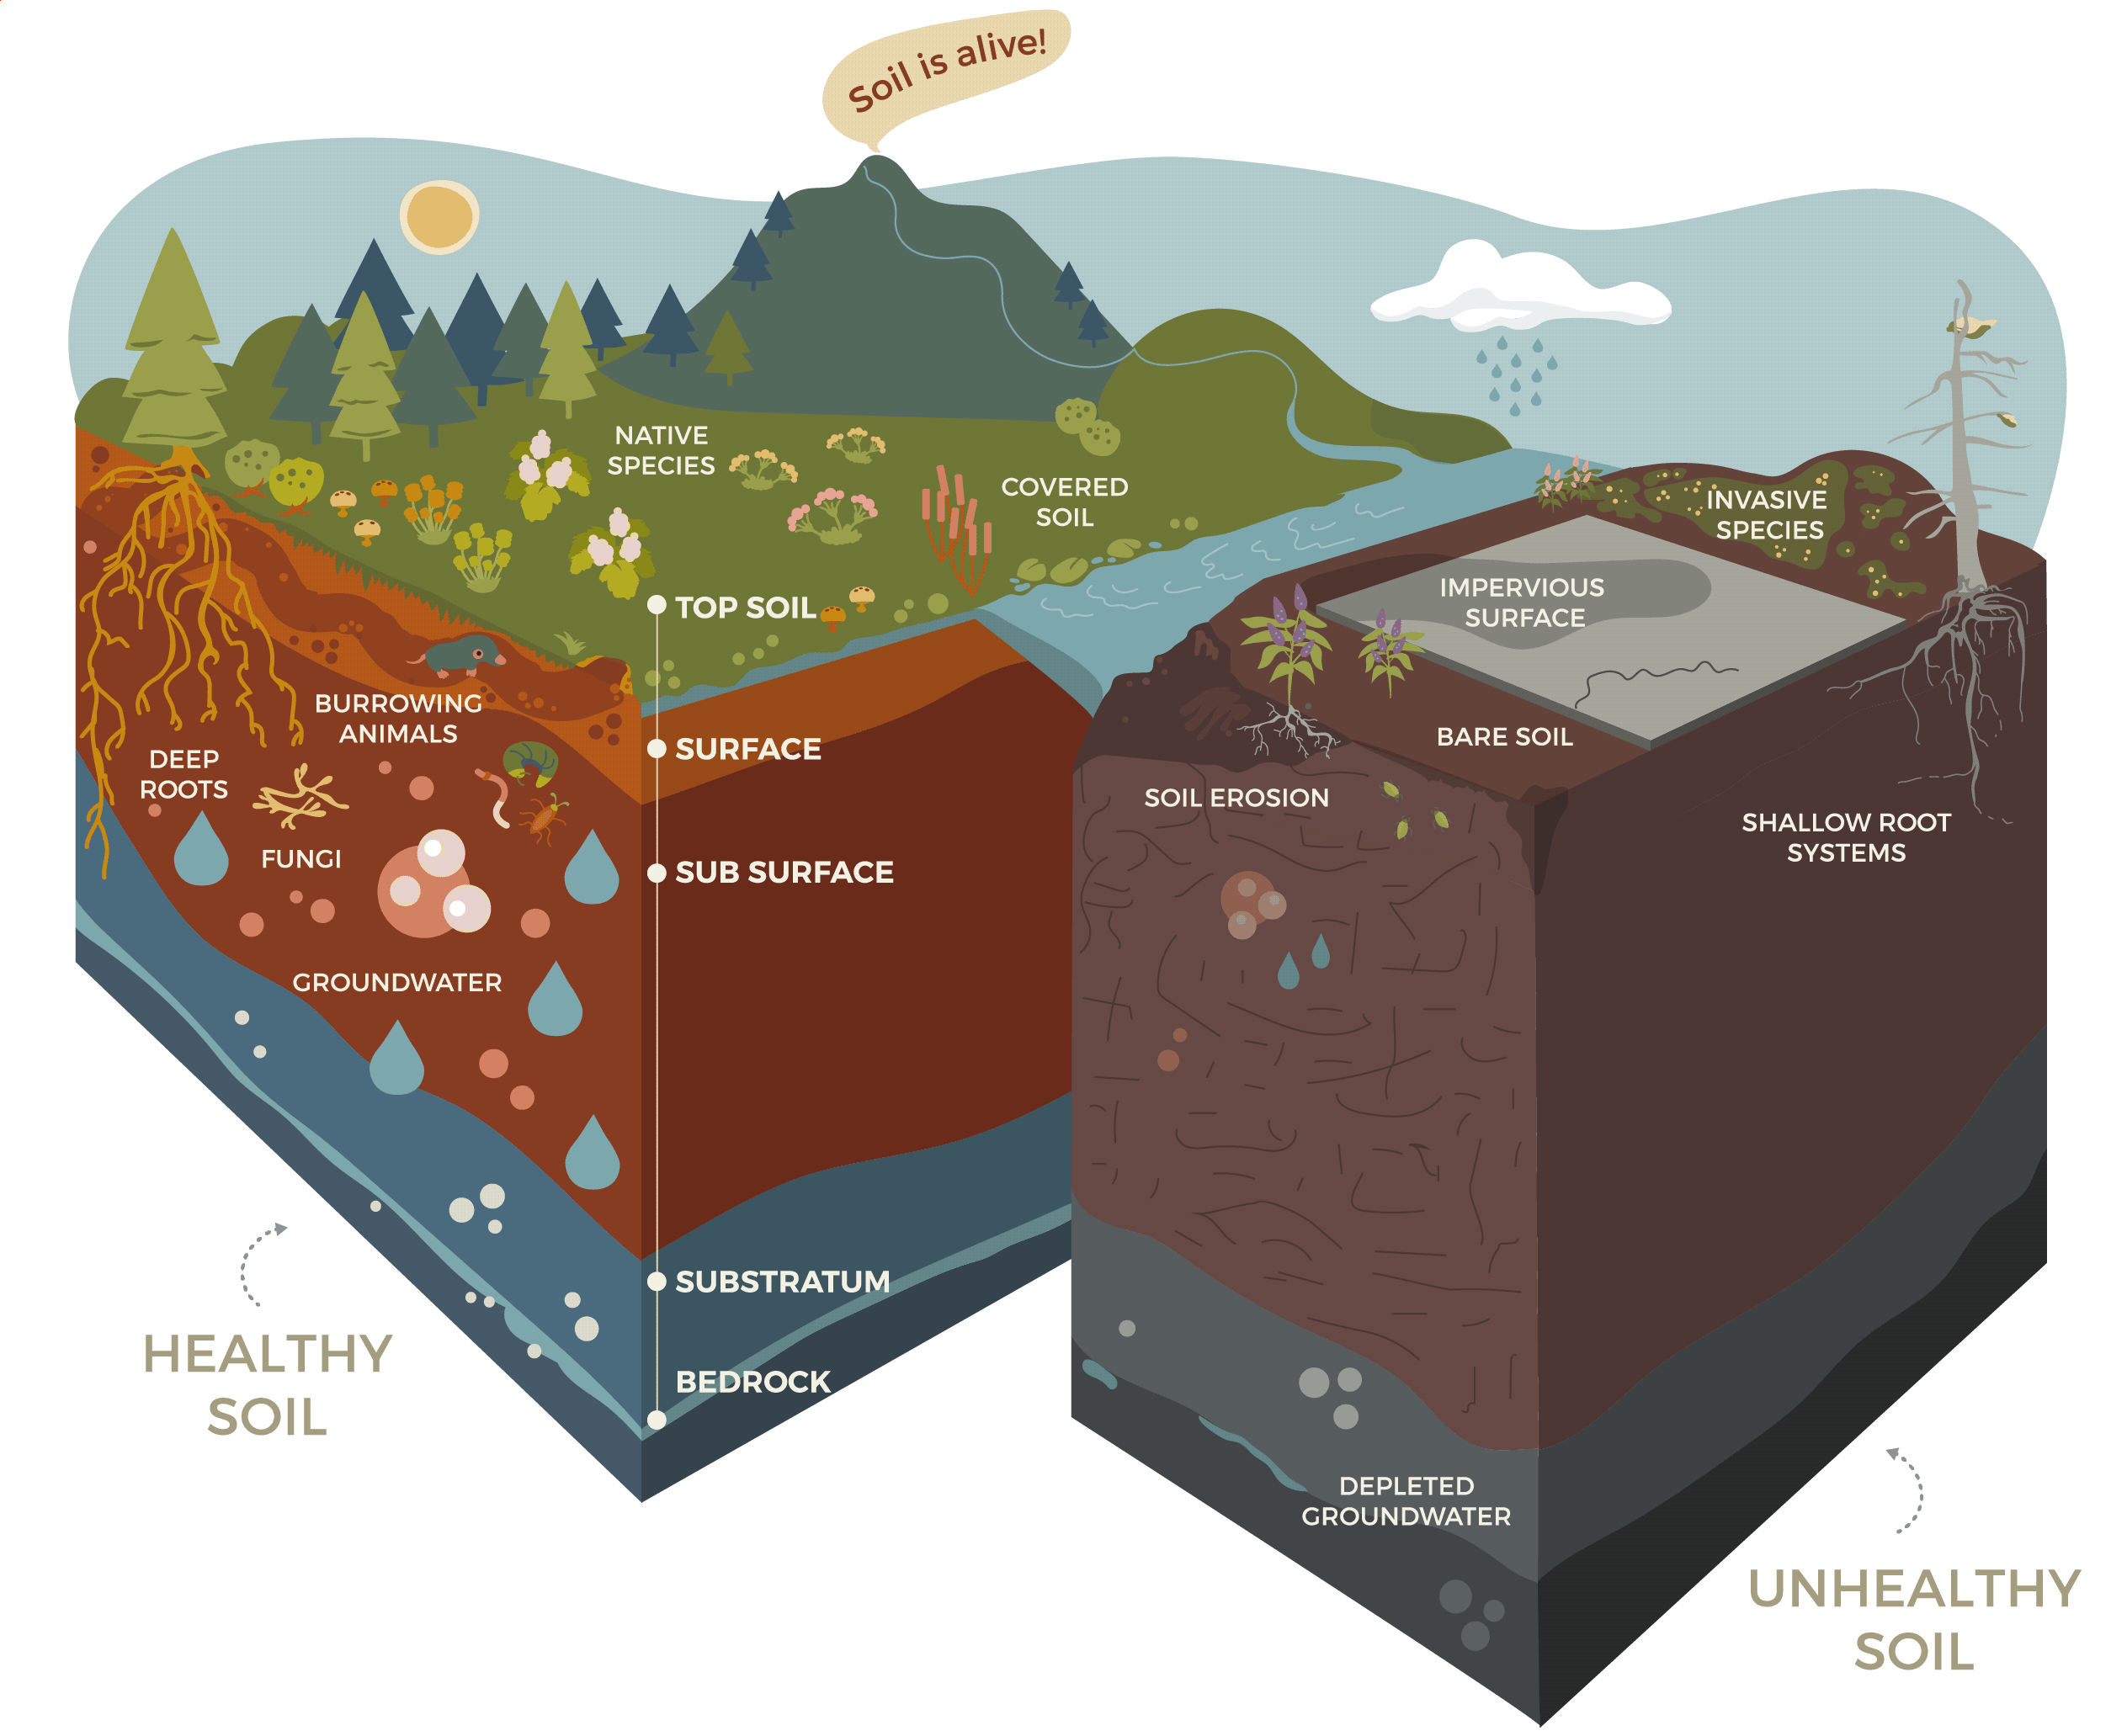 Soil Infographic Healthy Soil vs Unhealthy Soil Tualatin Soil water Conservation District